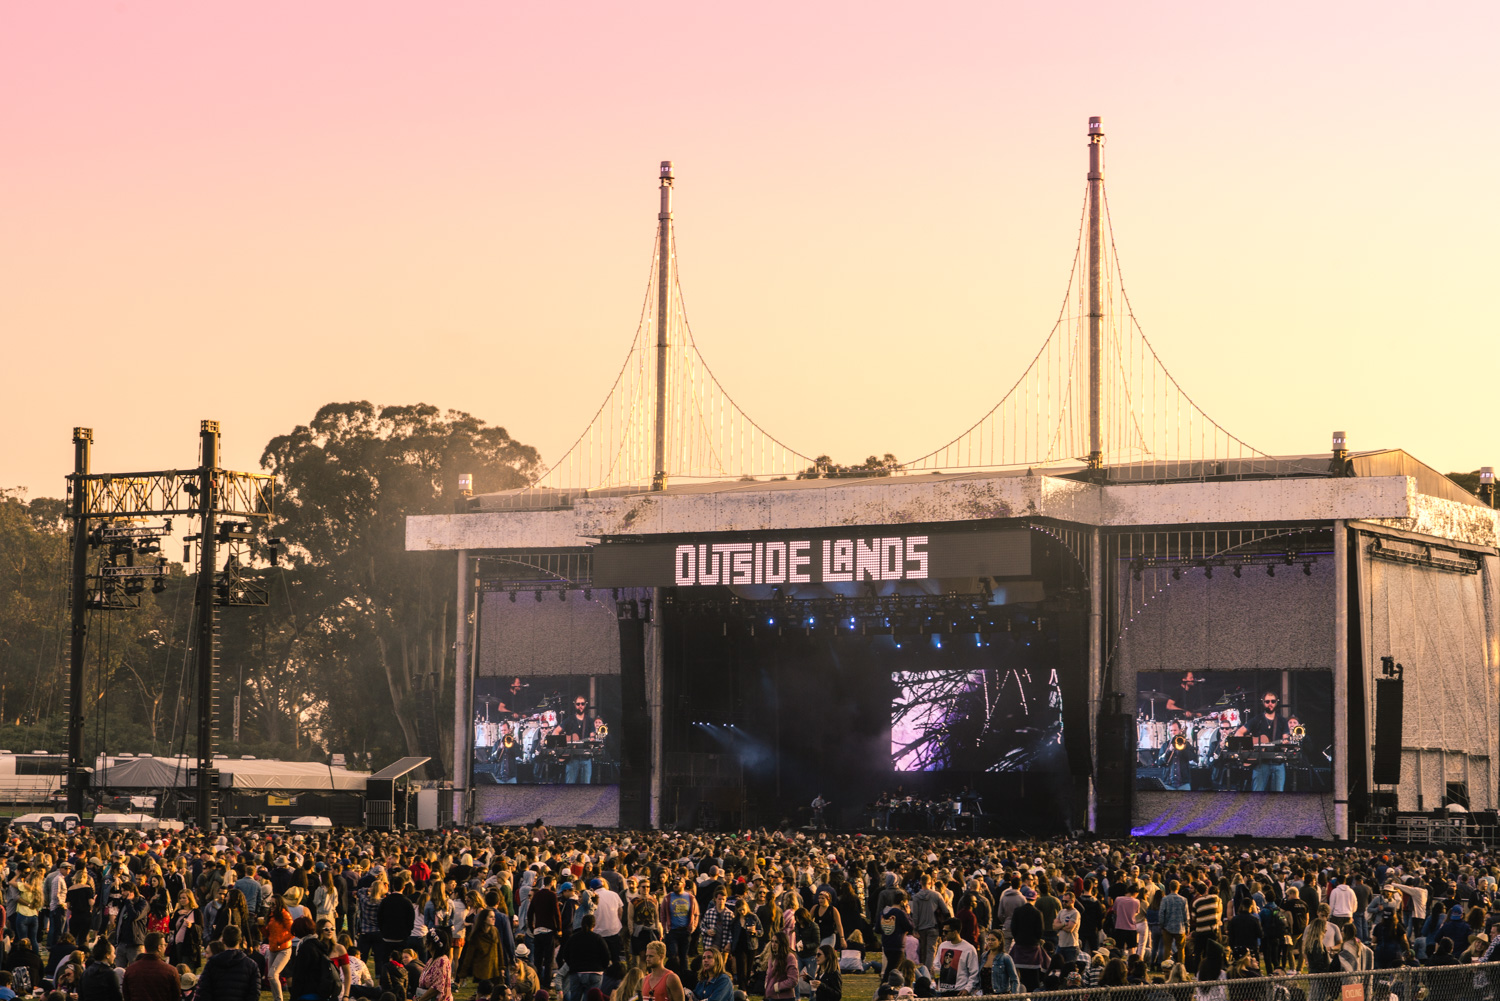 outside lands in san francisco